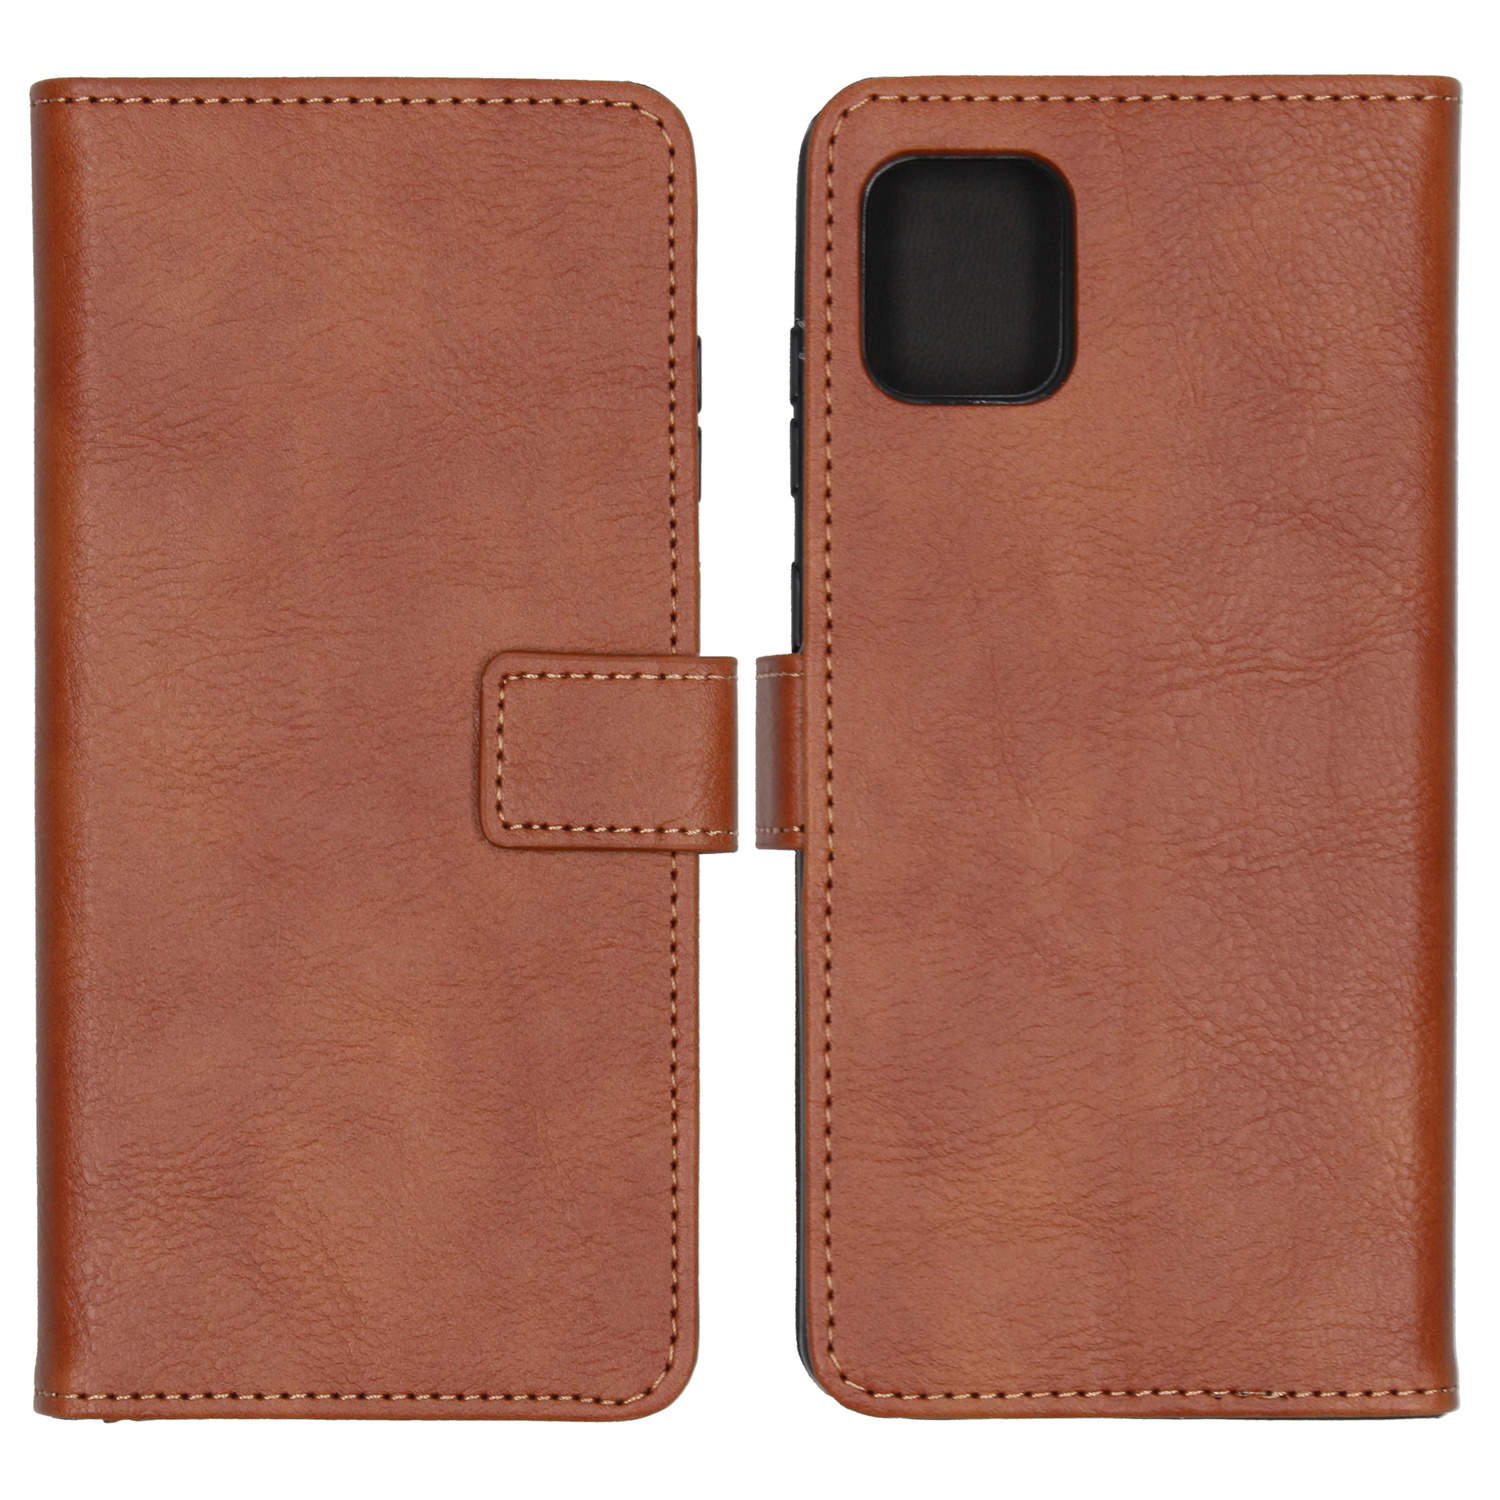 iMoshion Luxe Booktype Samsung Galaxy Note 10 Lite - Bruin